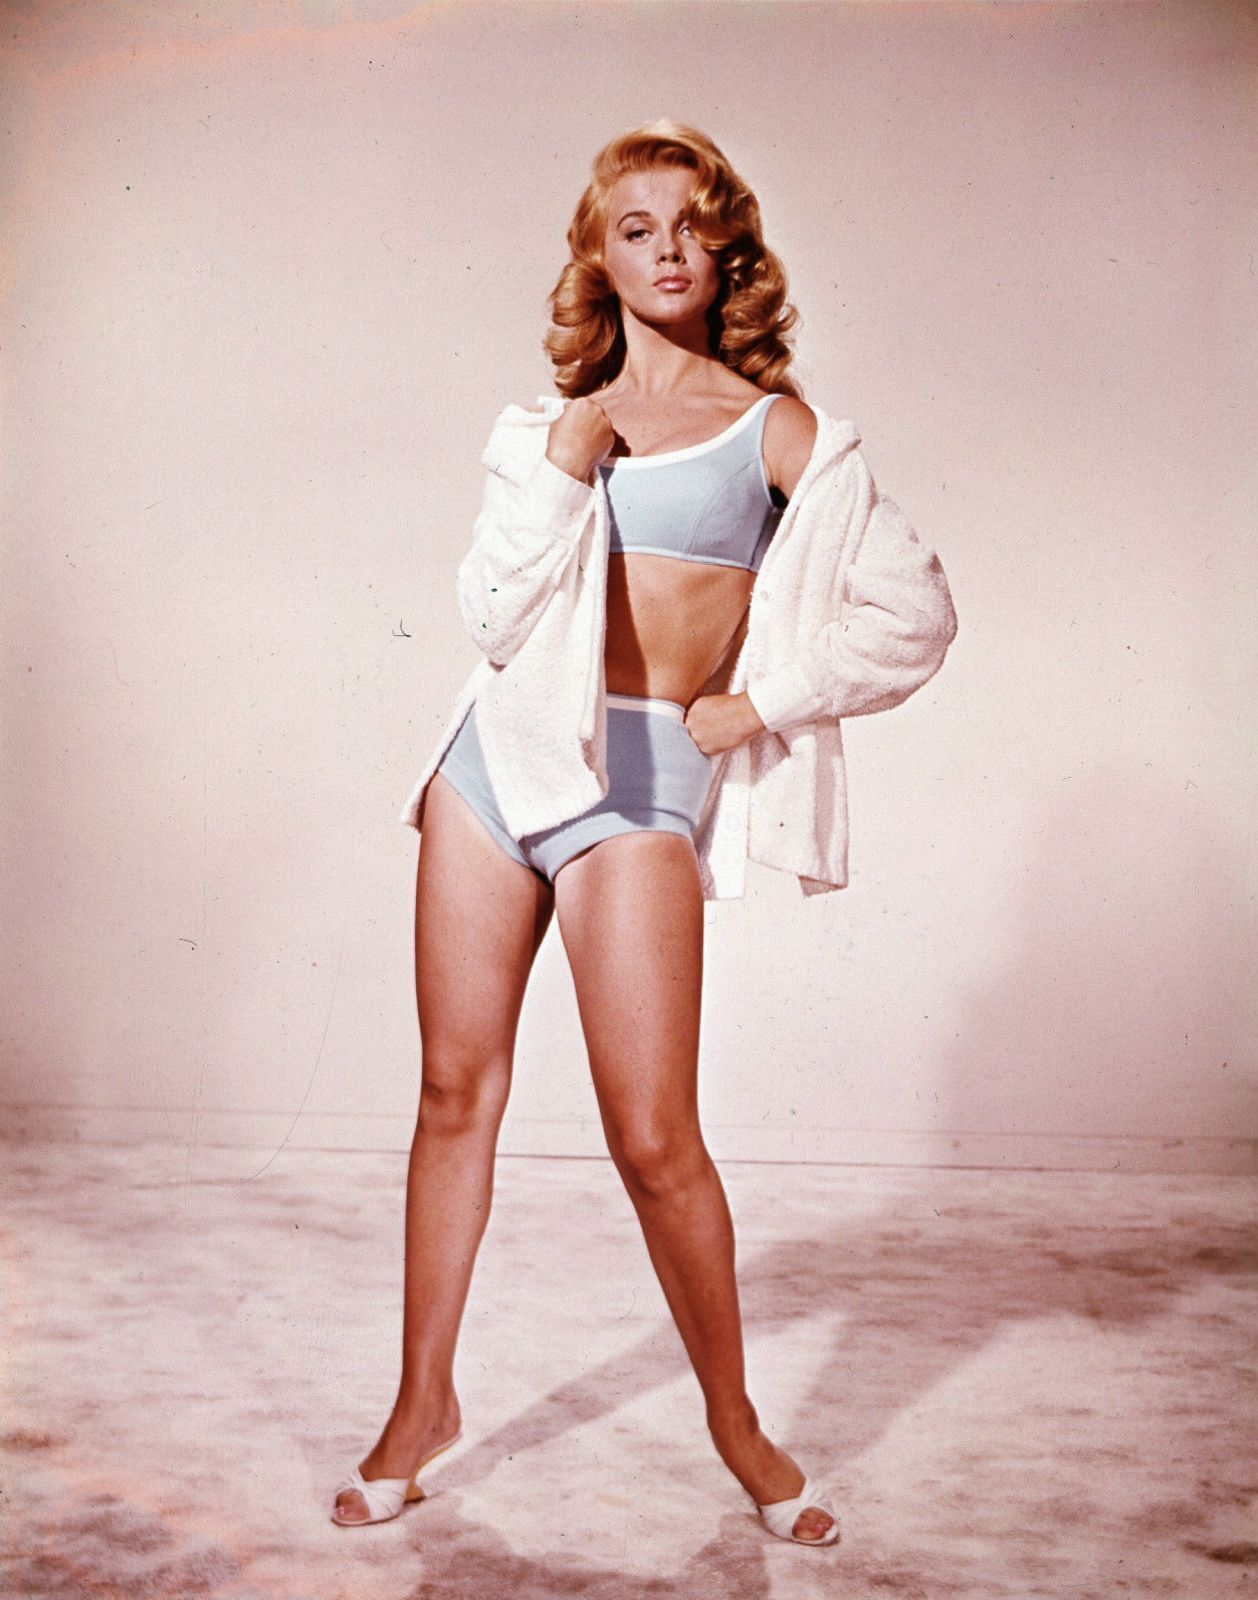 Ann Margret is flaunting her body in bikini wearing a only shirt.